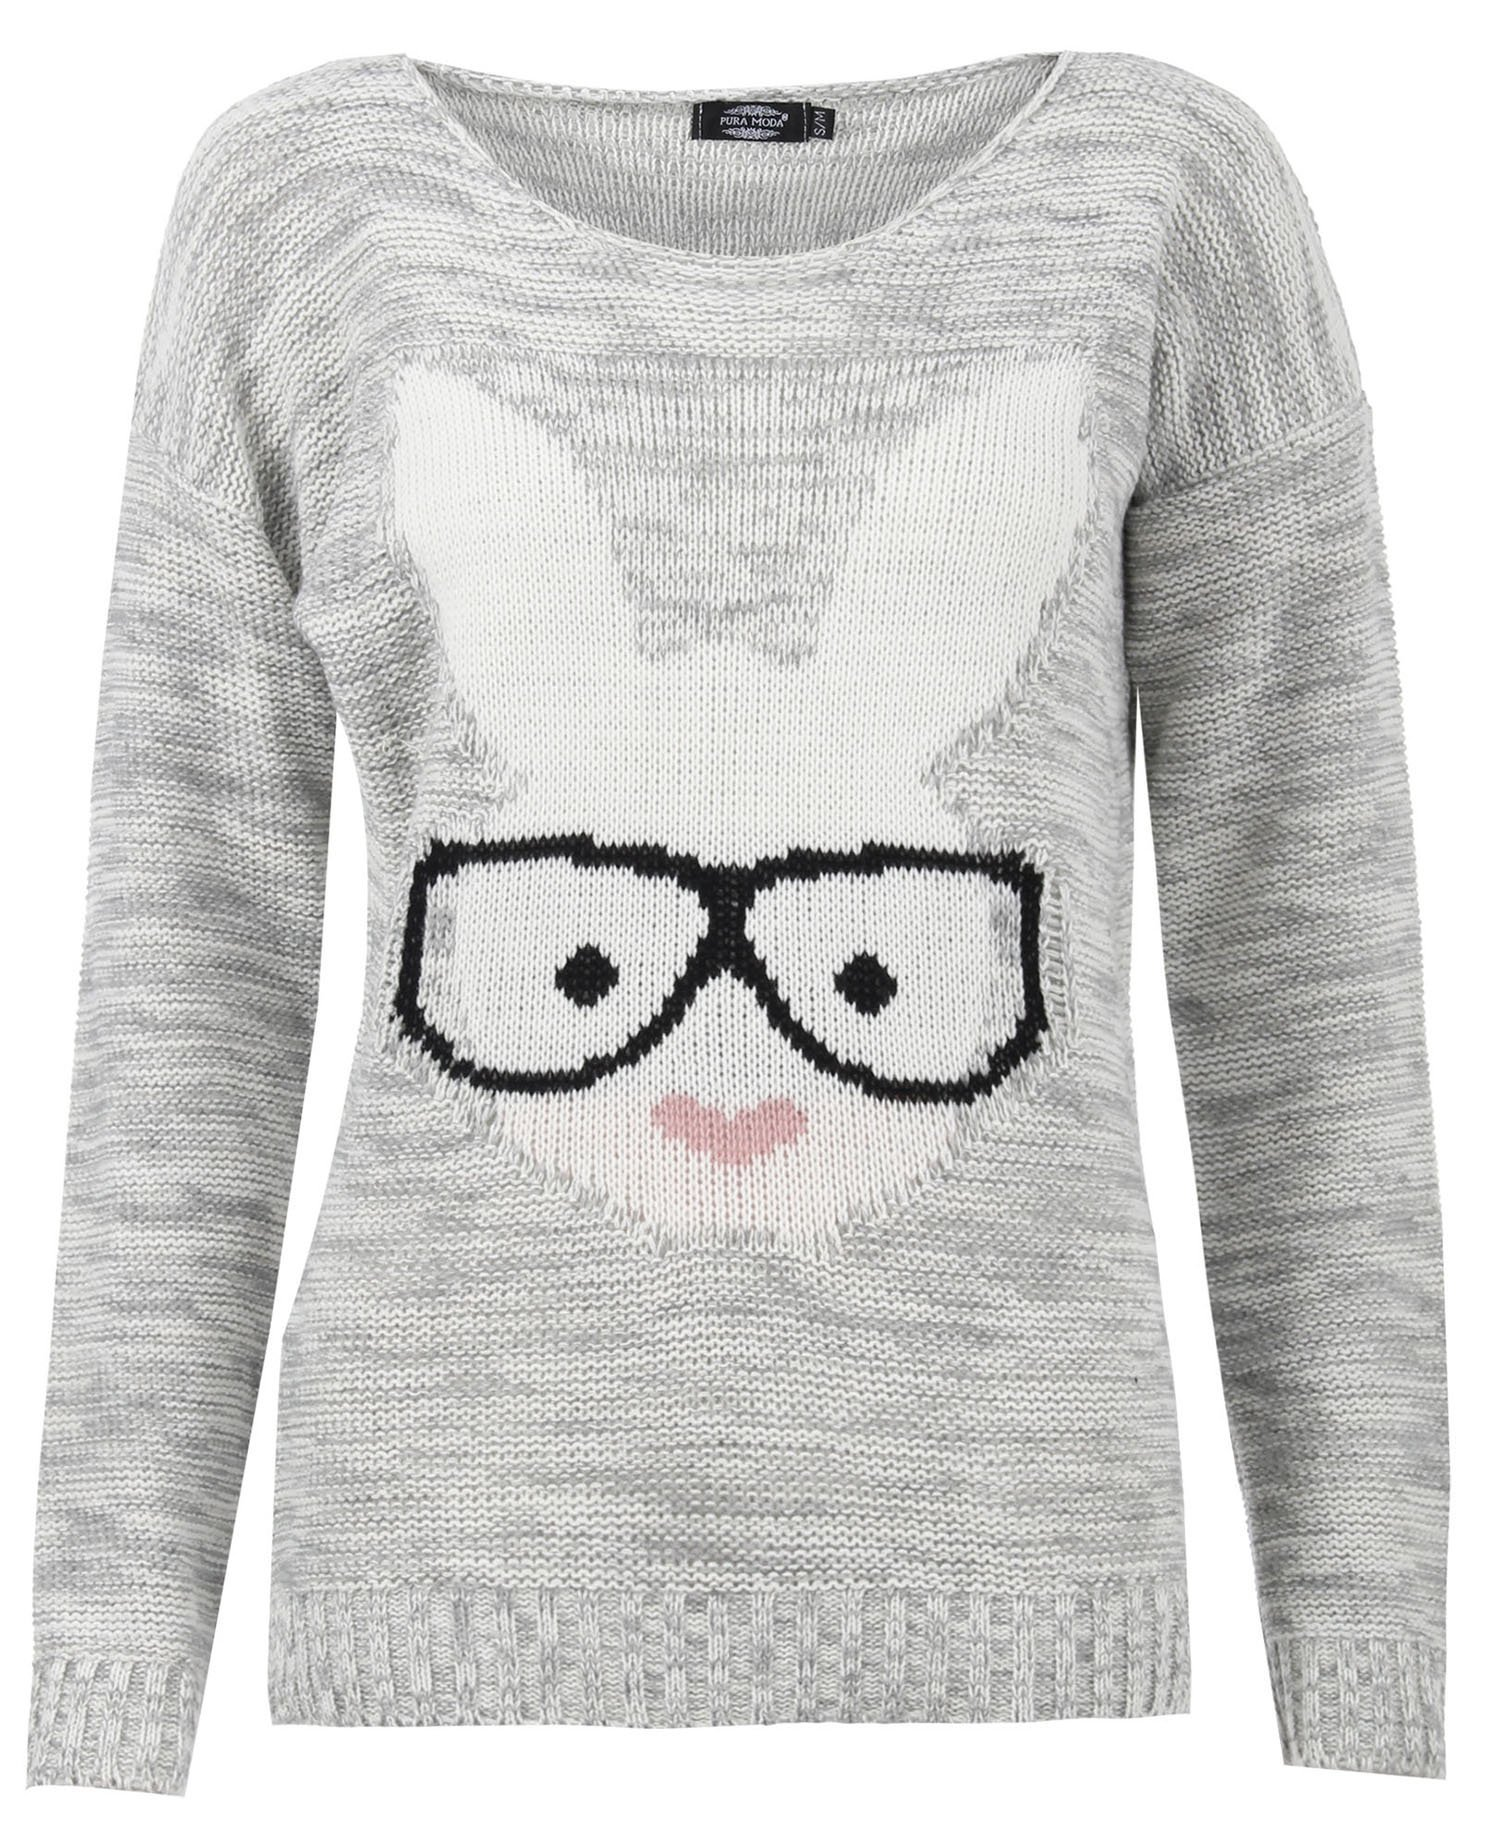 Forever Womens Long Sleeves Bunny & Fox Glasses Print Knitted Motif Jumper Top